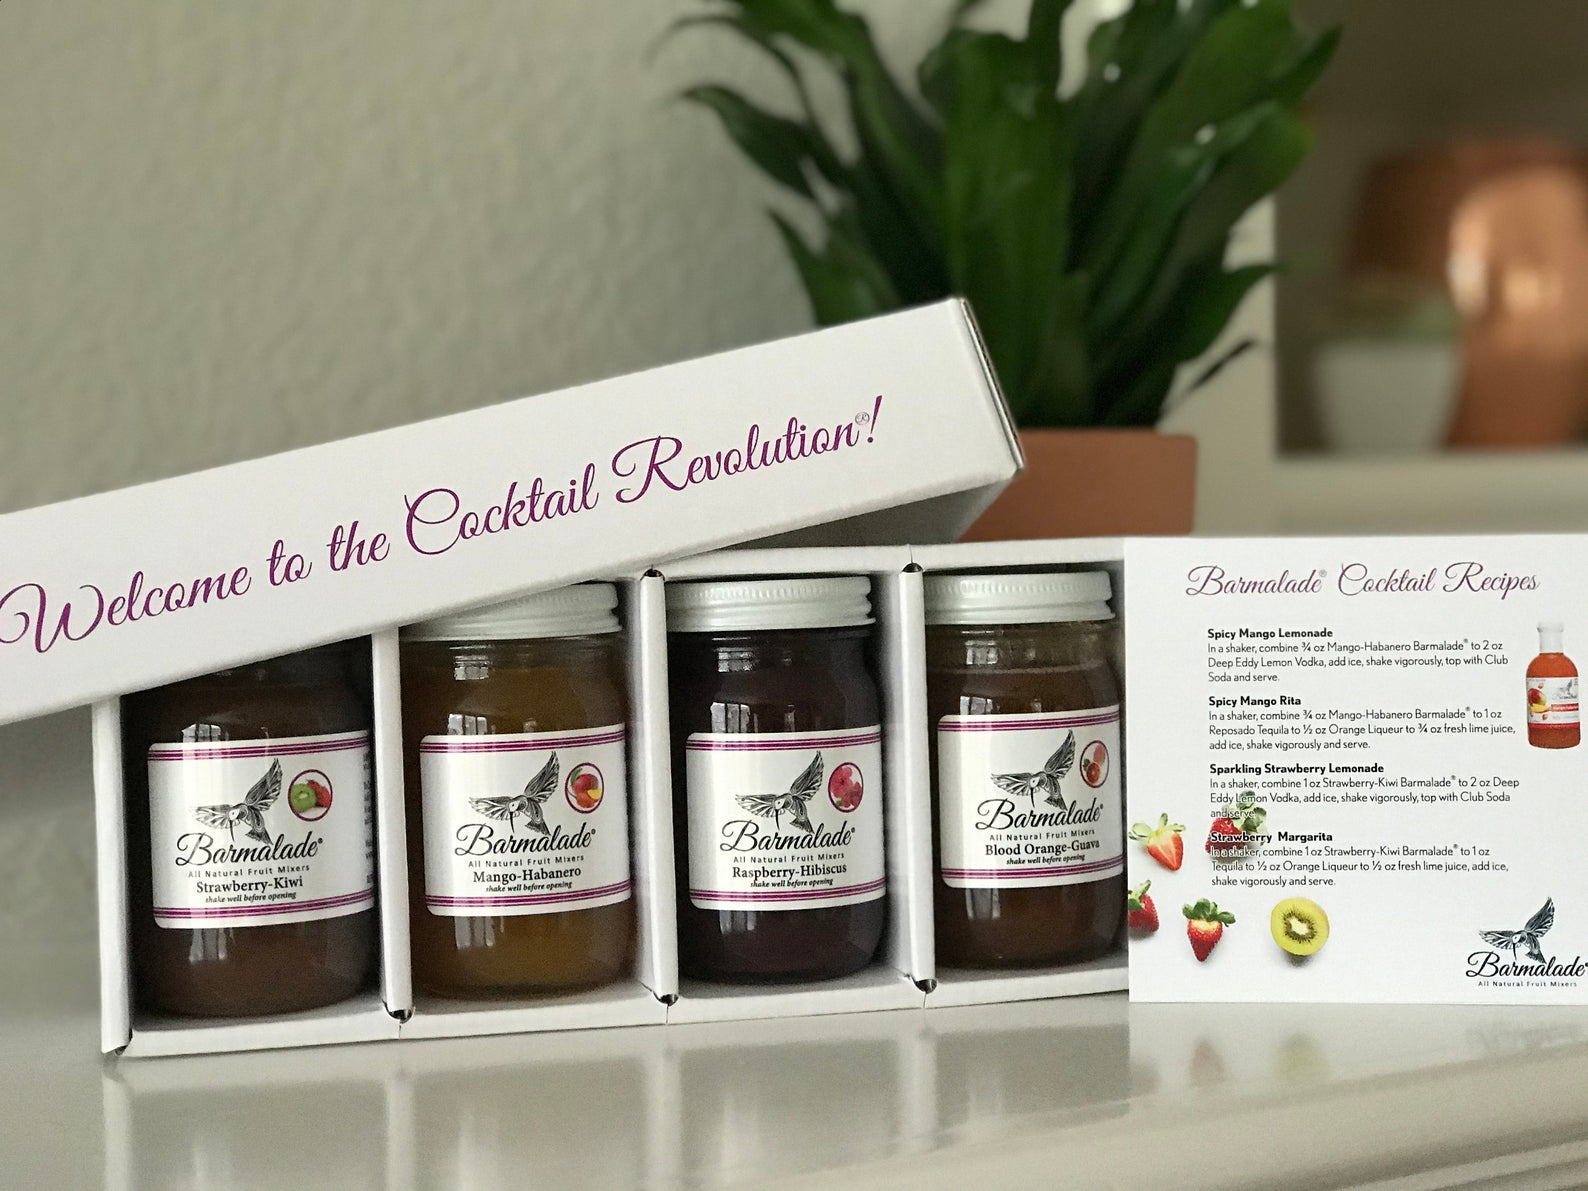 the pack of four jars of barmalade and a cocktail recipe card